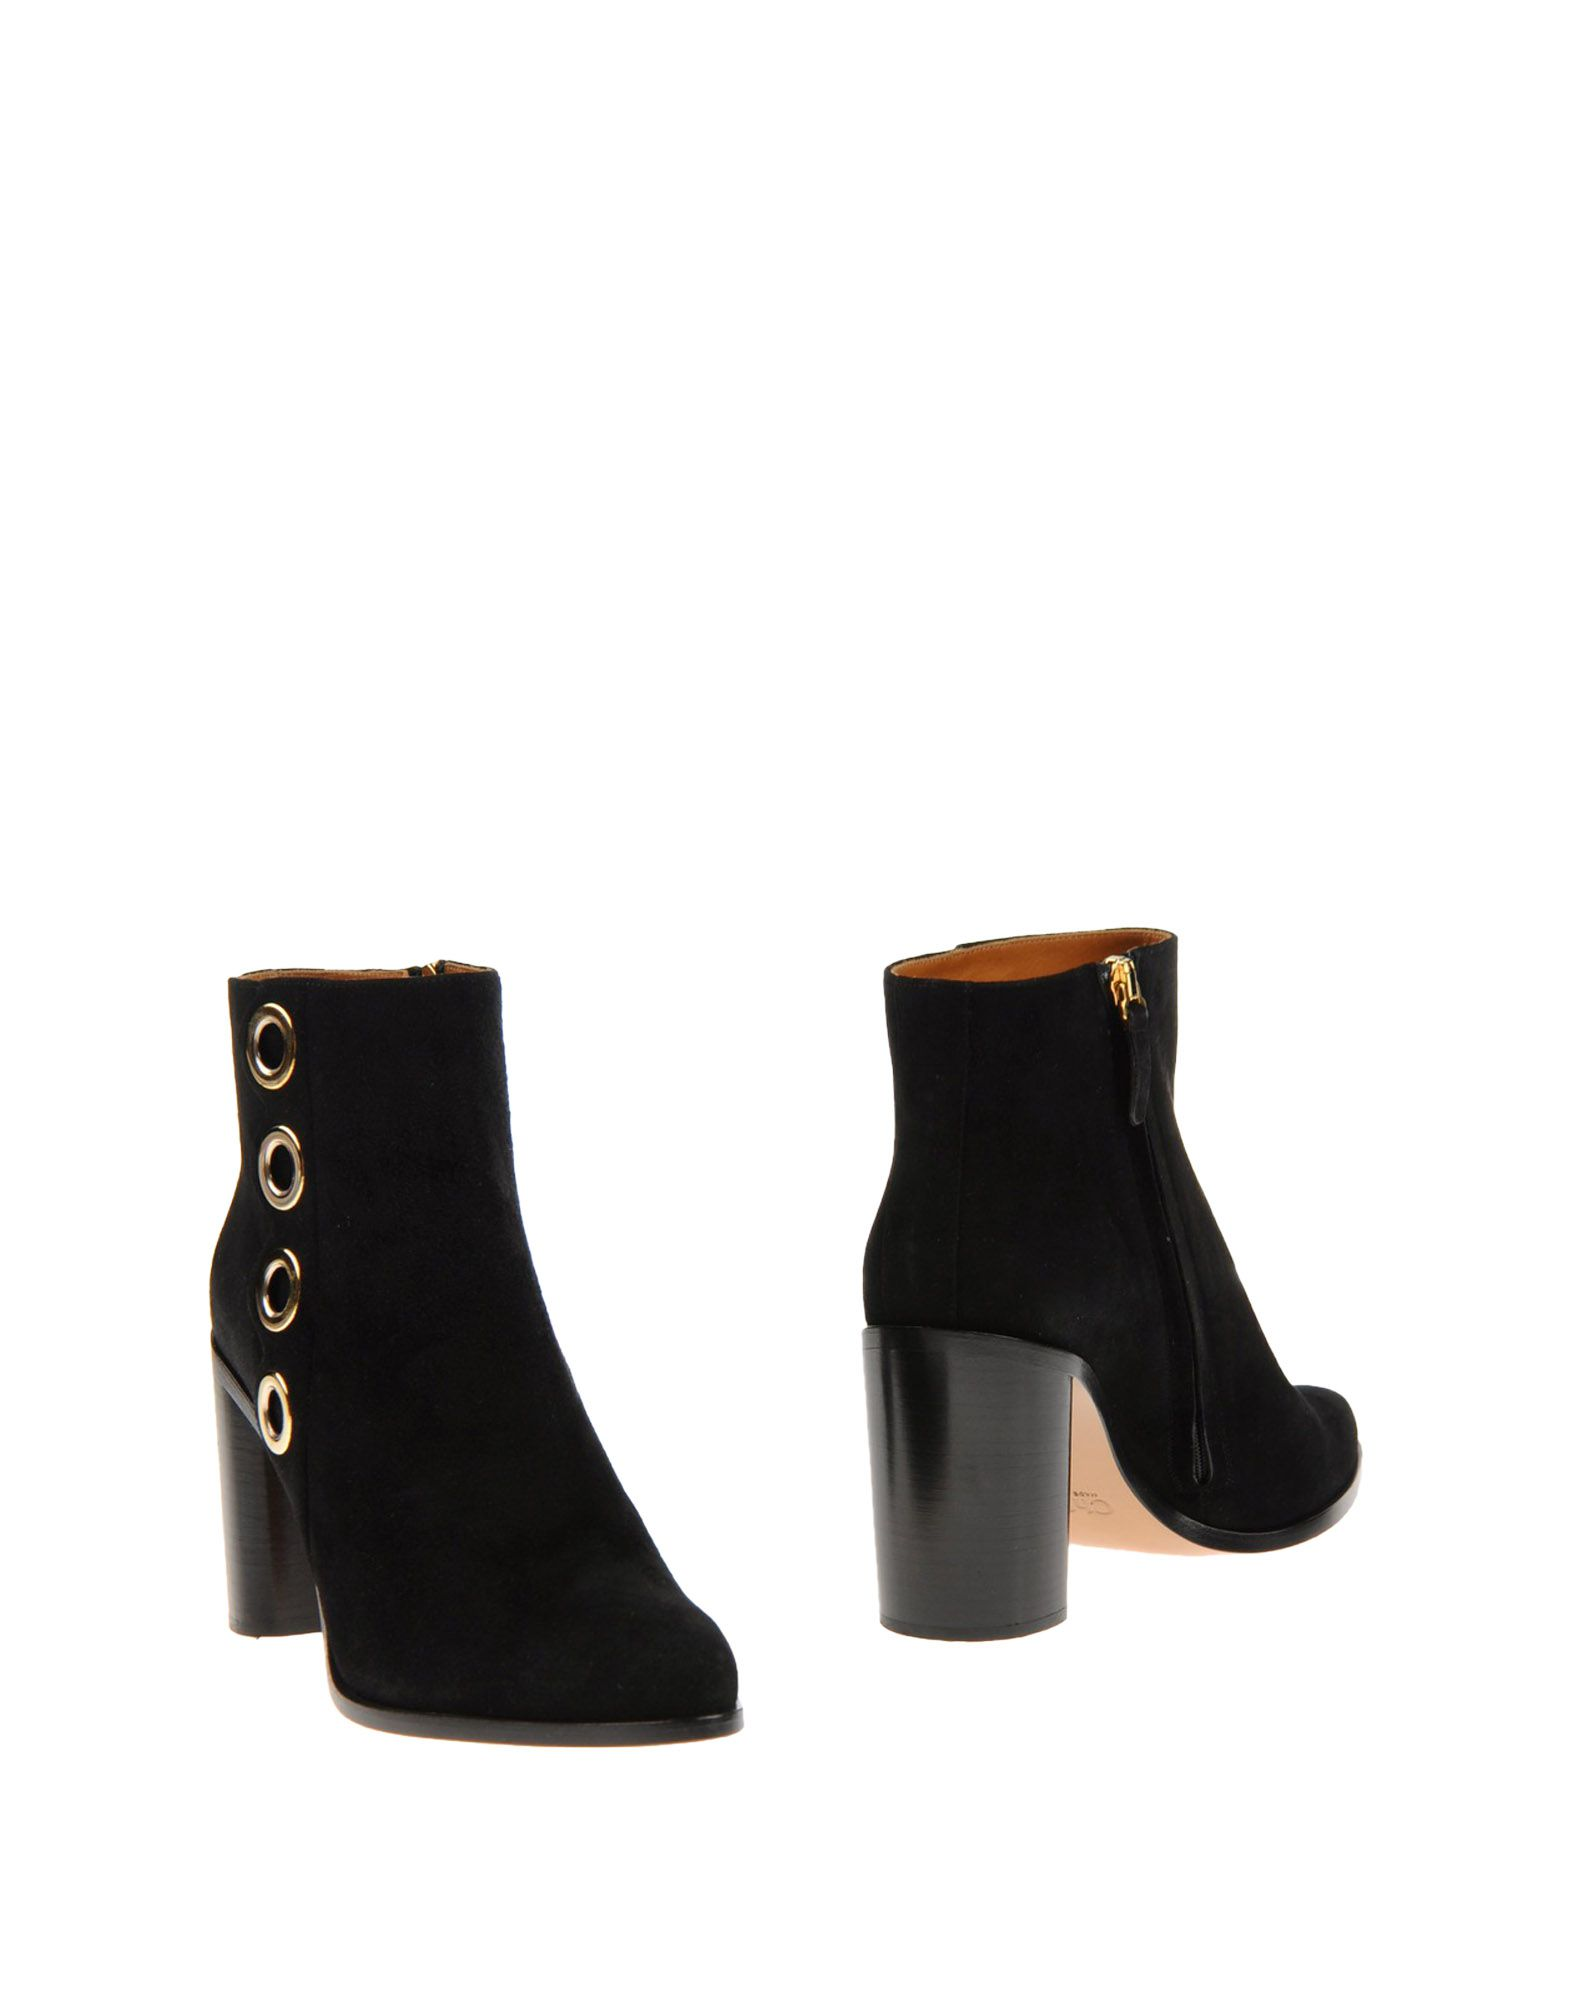 Boots for Women, Booties On Sale in Outlet, Black, Leather, 2017, US 7 (EU 37.5) Roberto Del Carlo